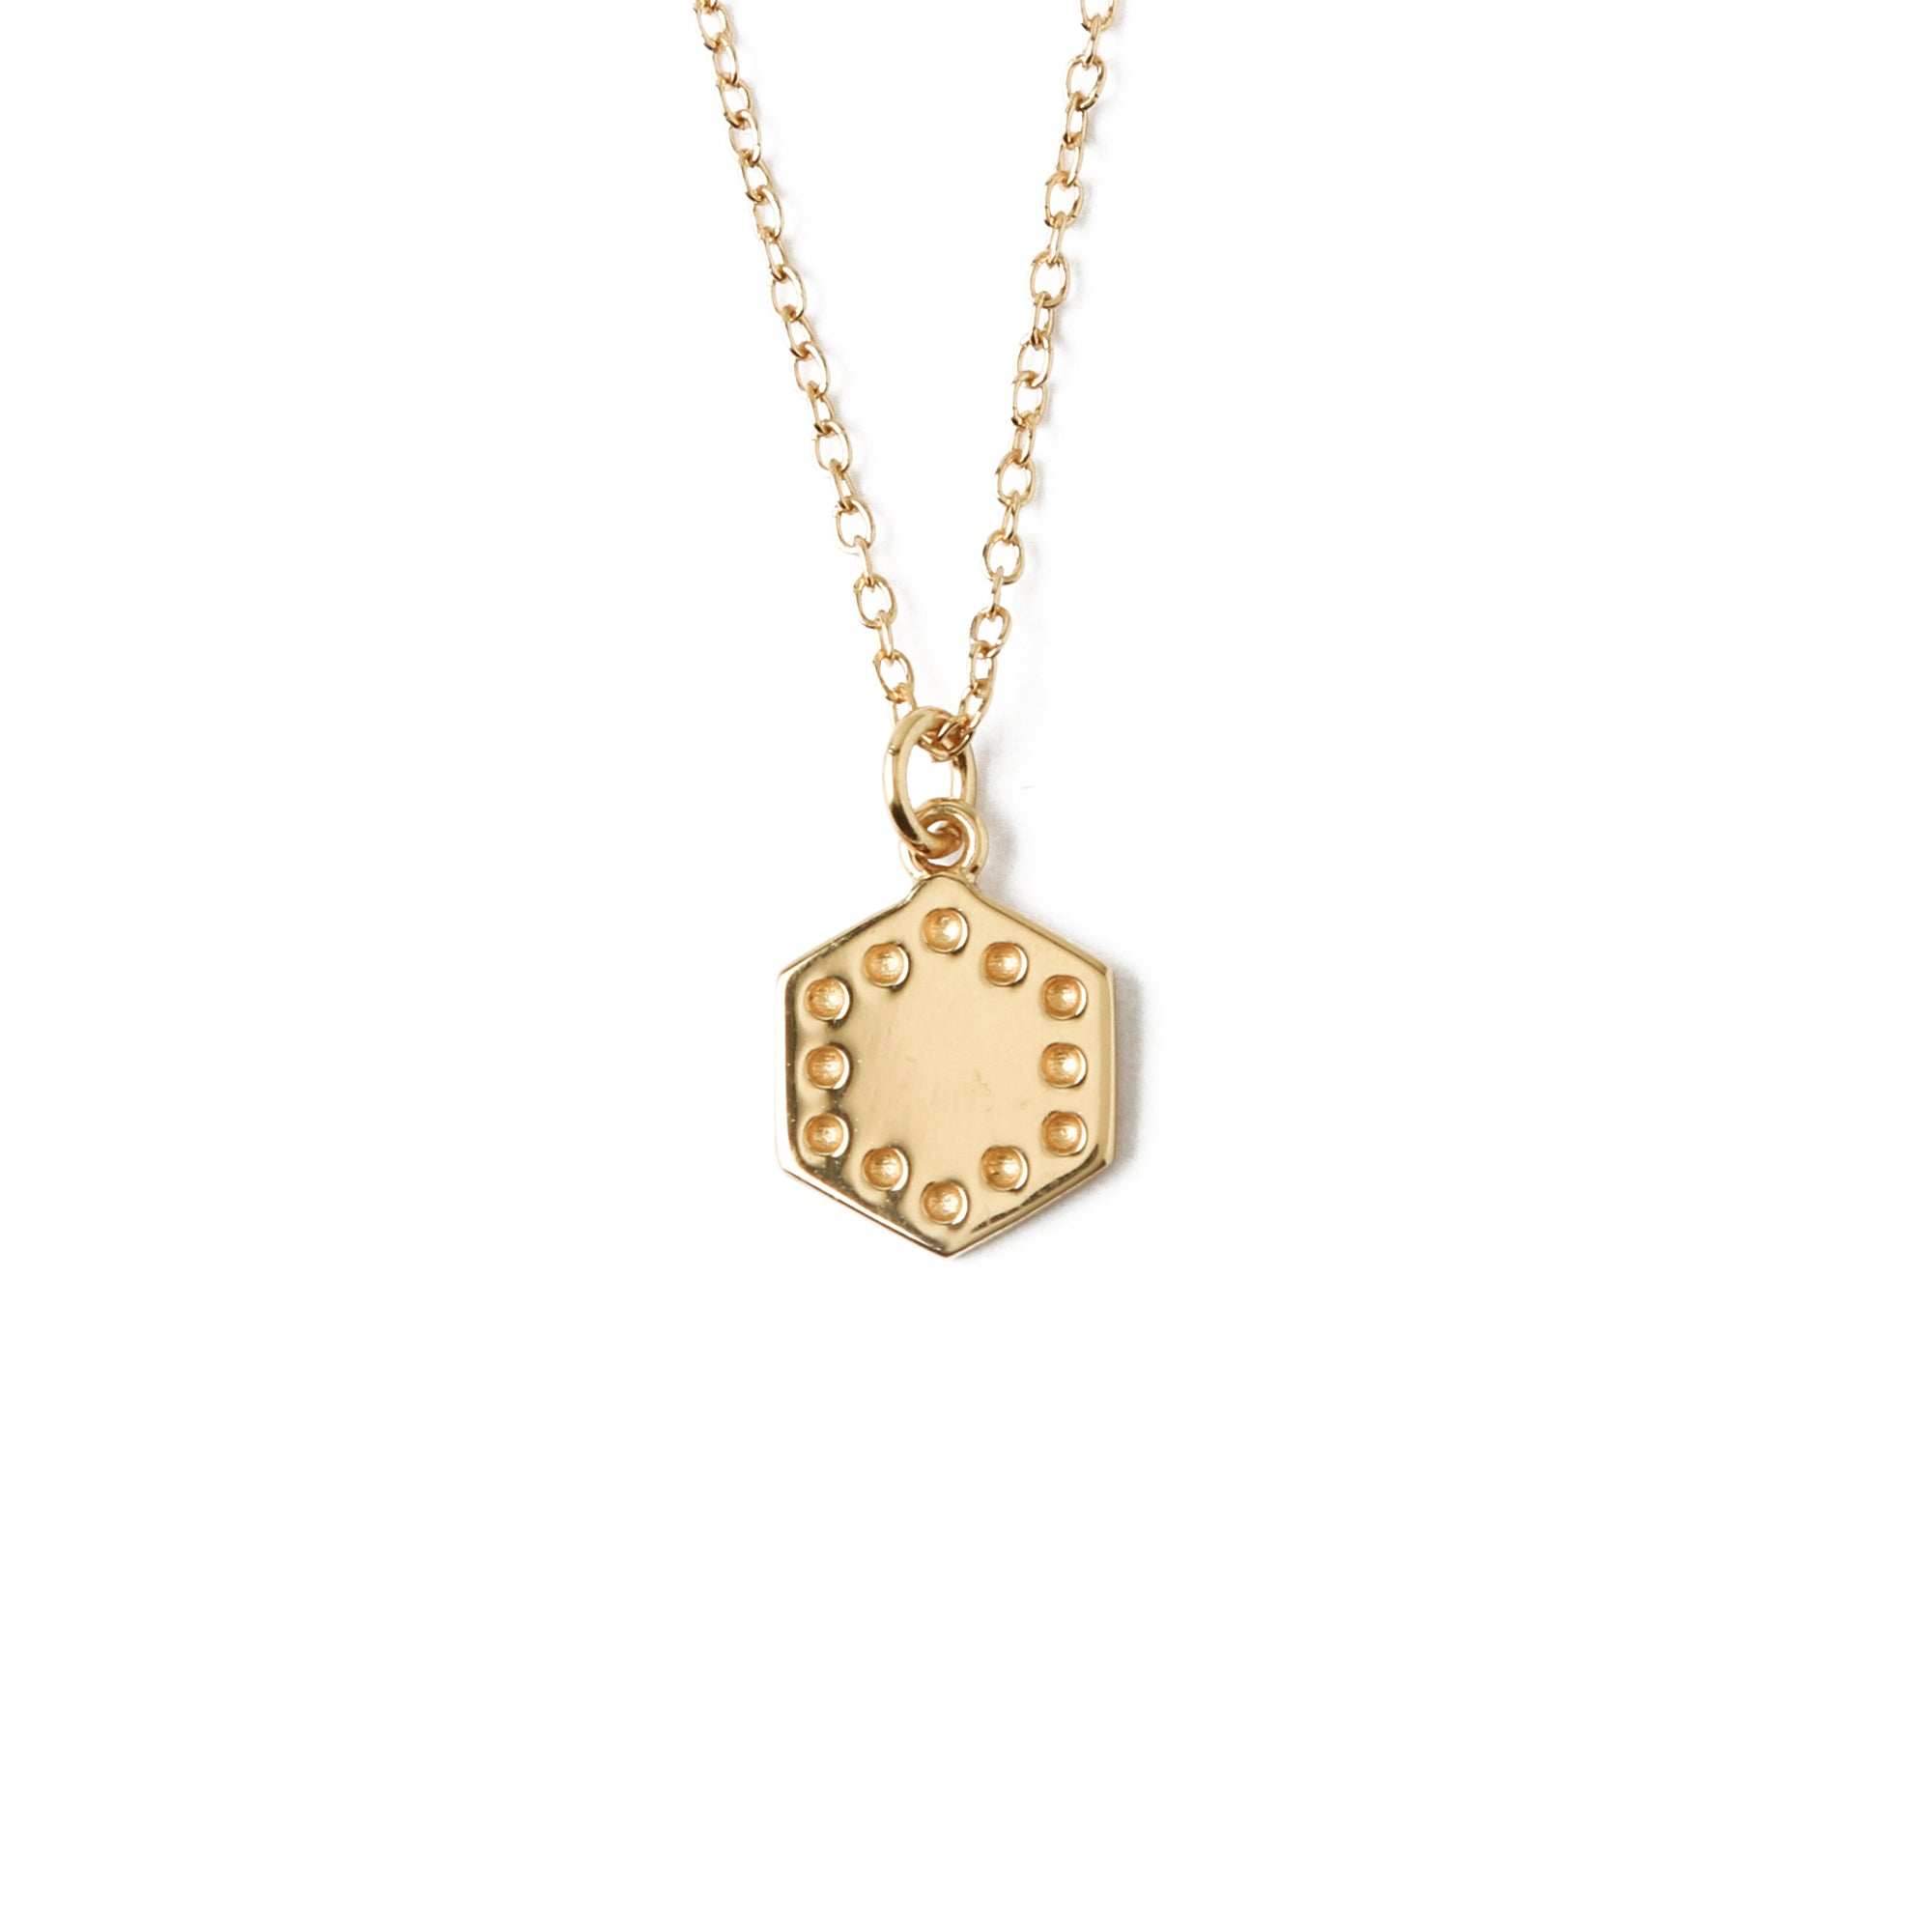 LUXE Small Hexagon Charm Necklace - Gold